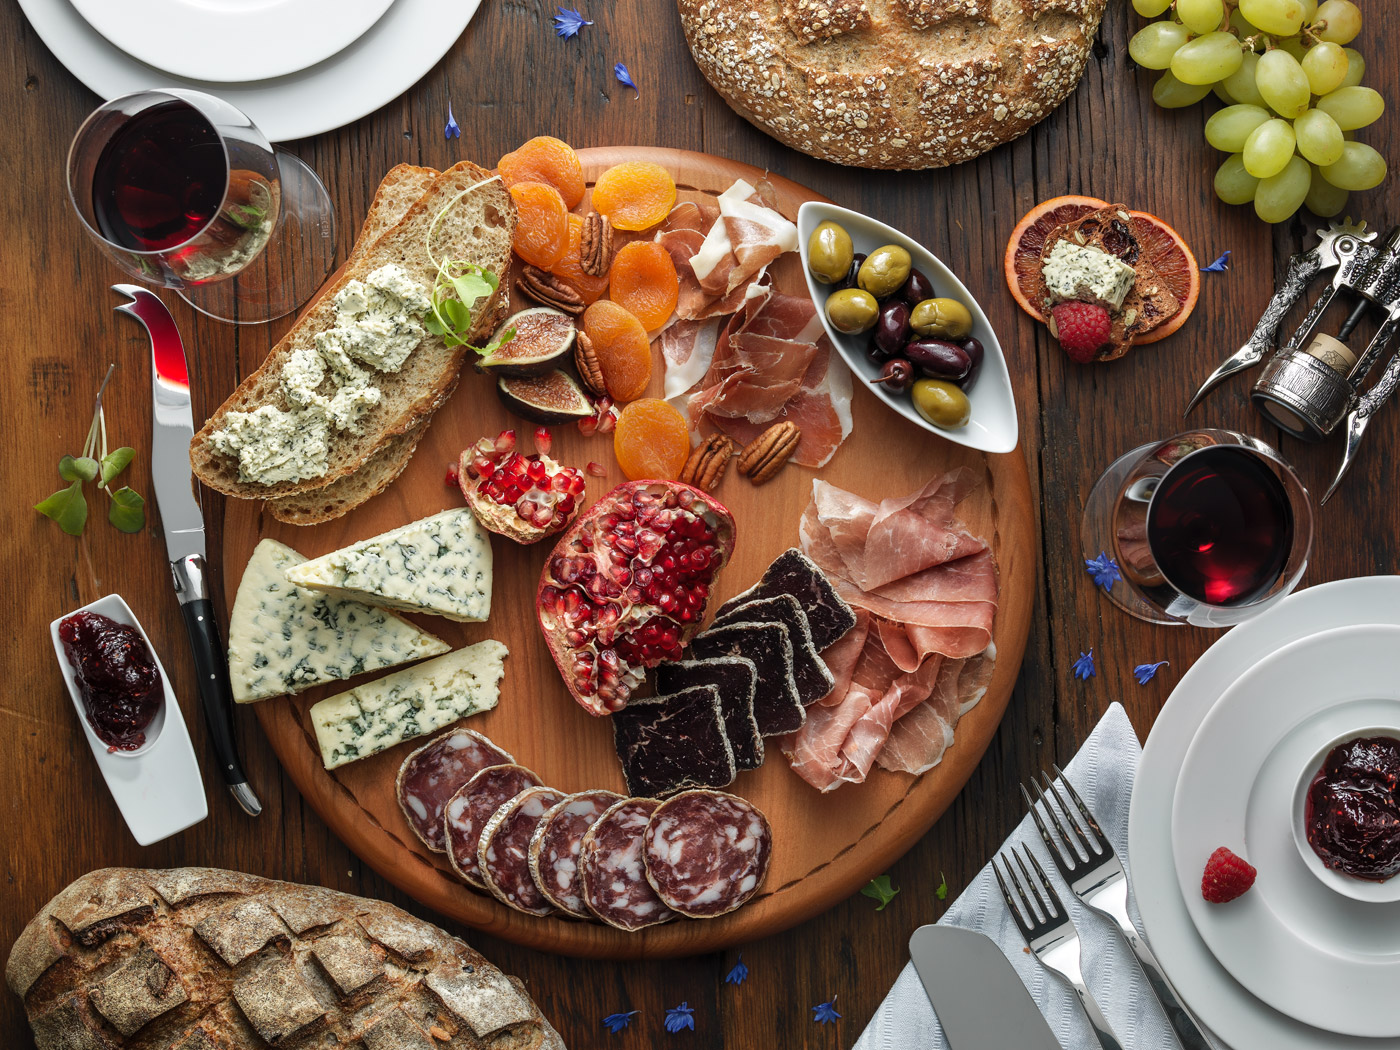 food, food photography, Montreal local food, cheese boards presentation, commercial product photography